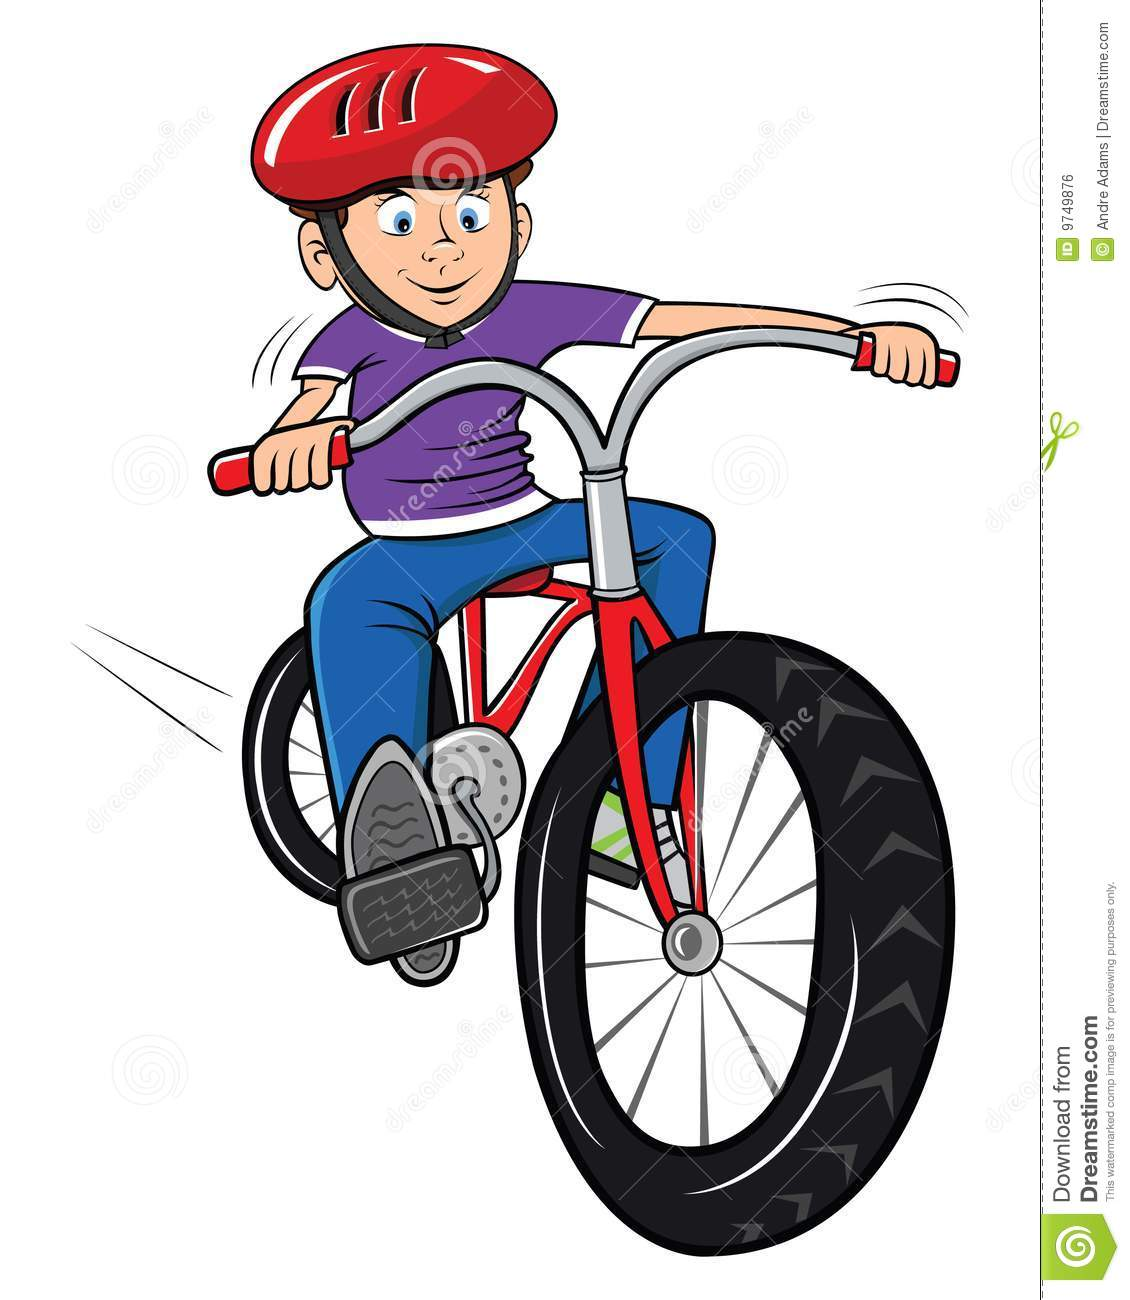 Cartoon Illustration Of A Boy Riding His Bike